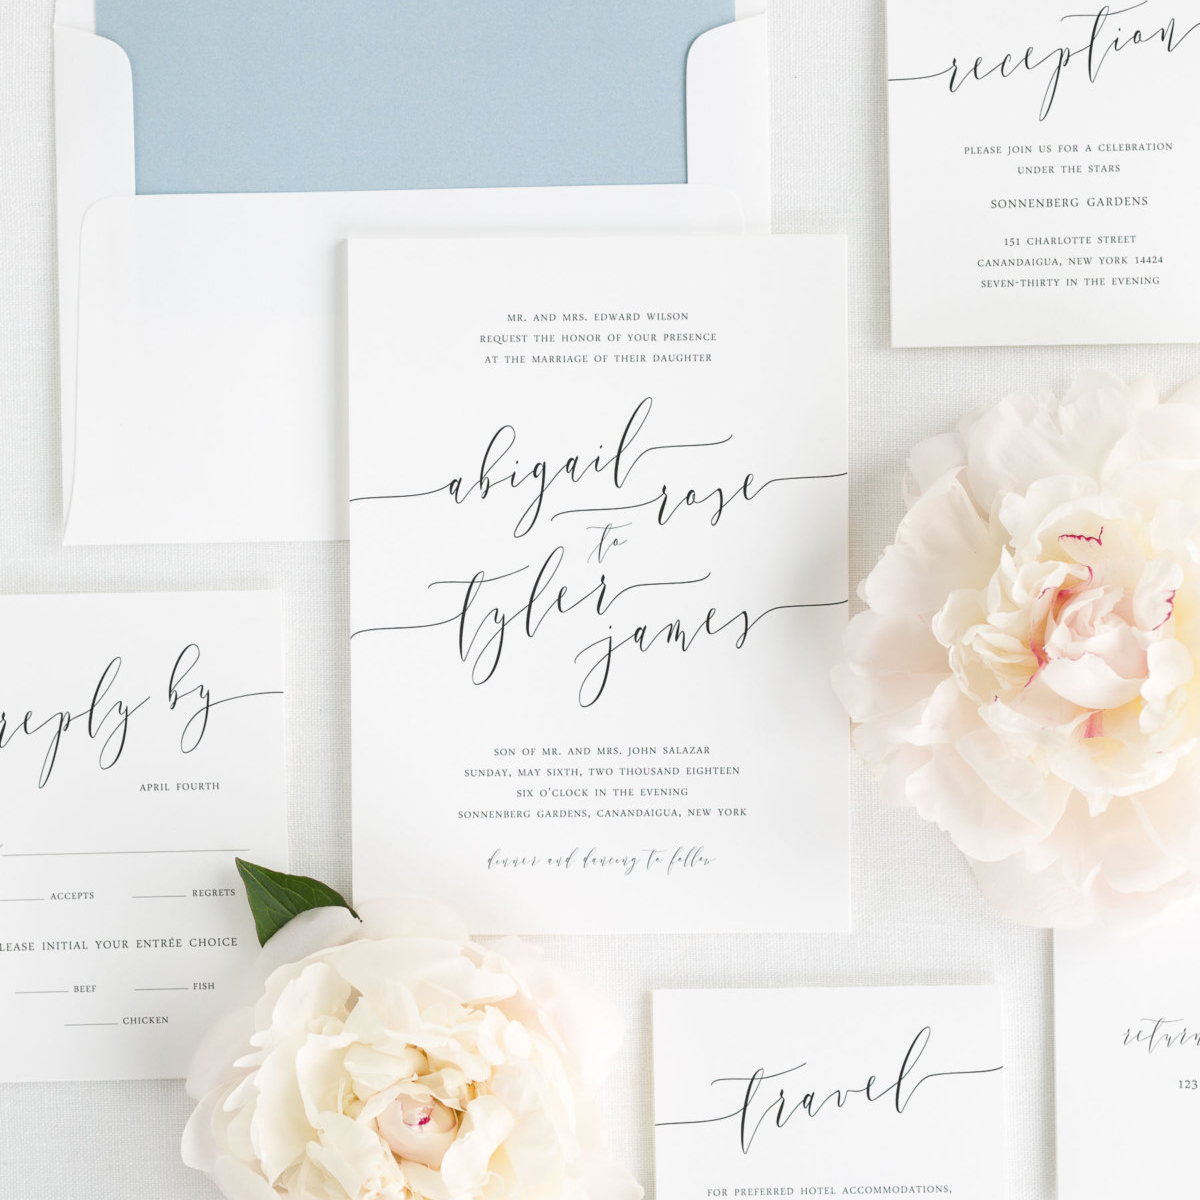 When Do I Send Out Wedding Invites: Our Top 20 Swoon-Worthy Wedding Invitations From Etsy